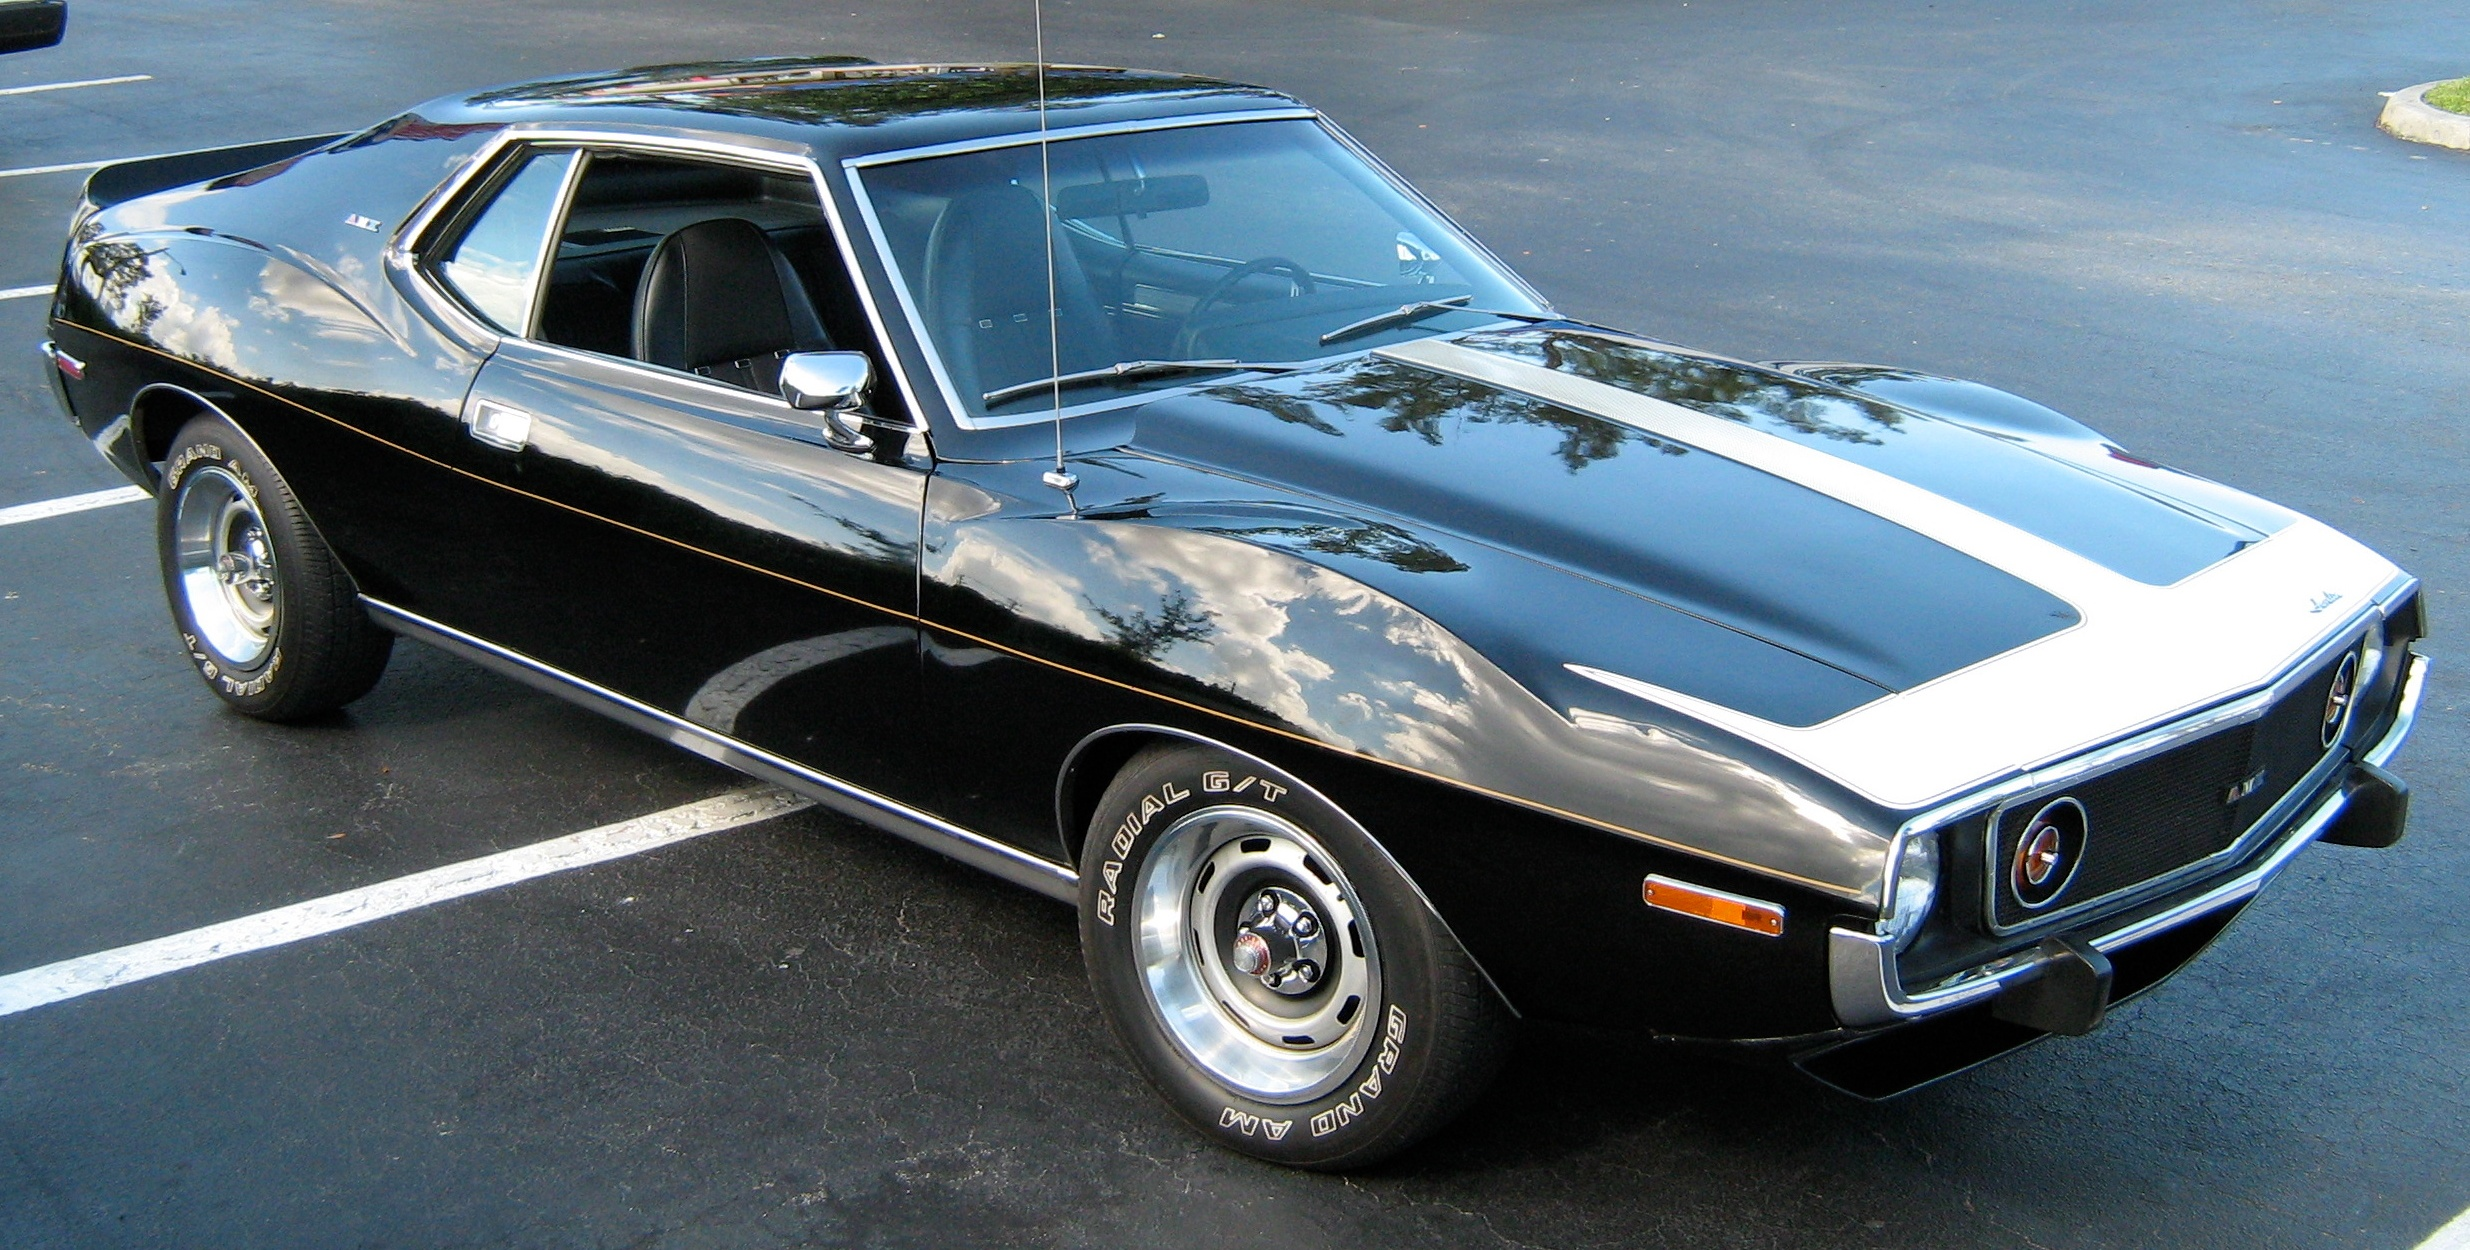 AMC Javelin from the USA import